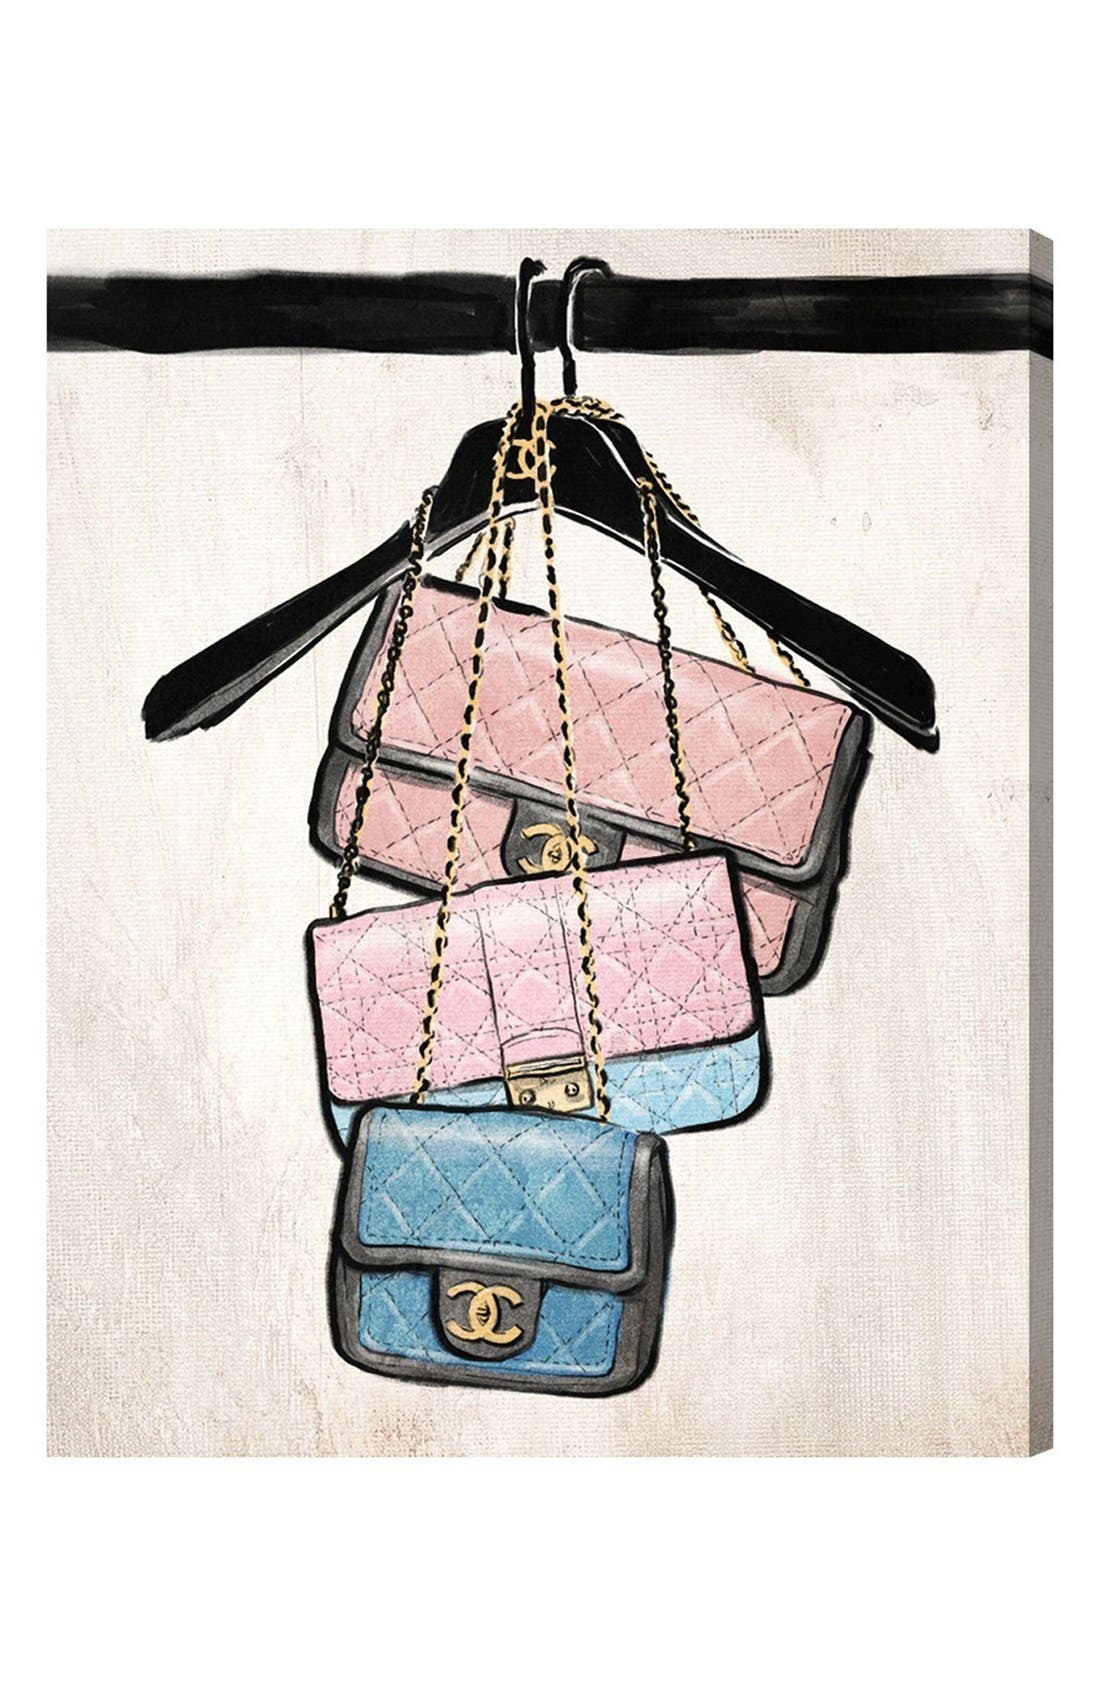 Alternate Image 1 Selected - Oliver Gal 'Closet Purses' Canvas Wall Art